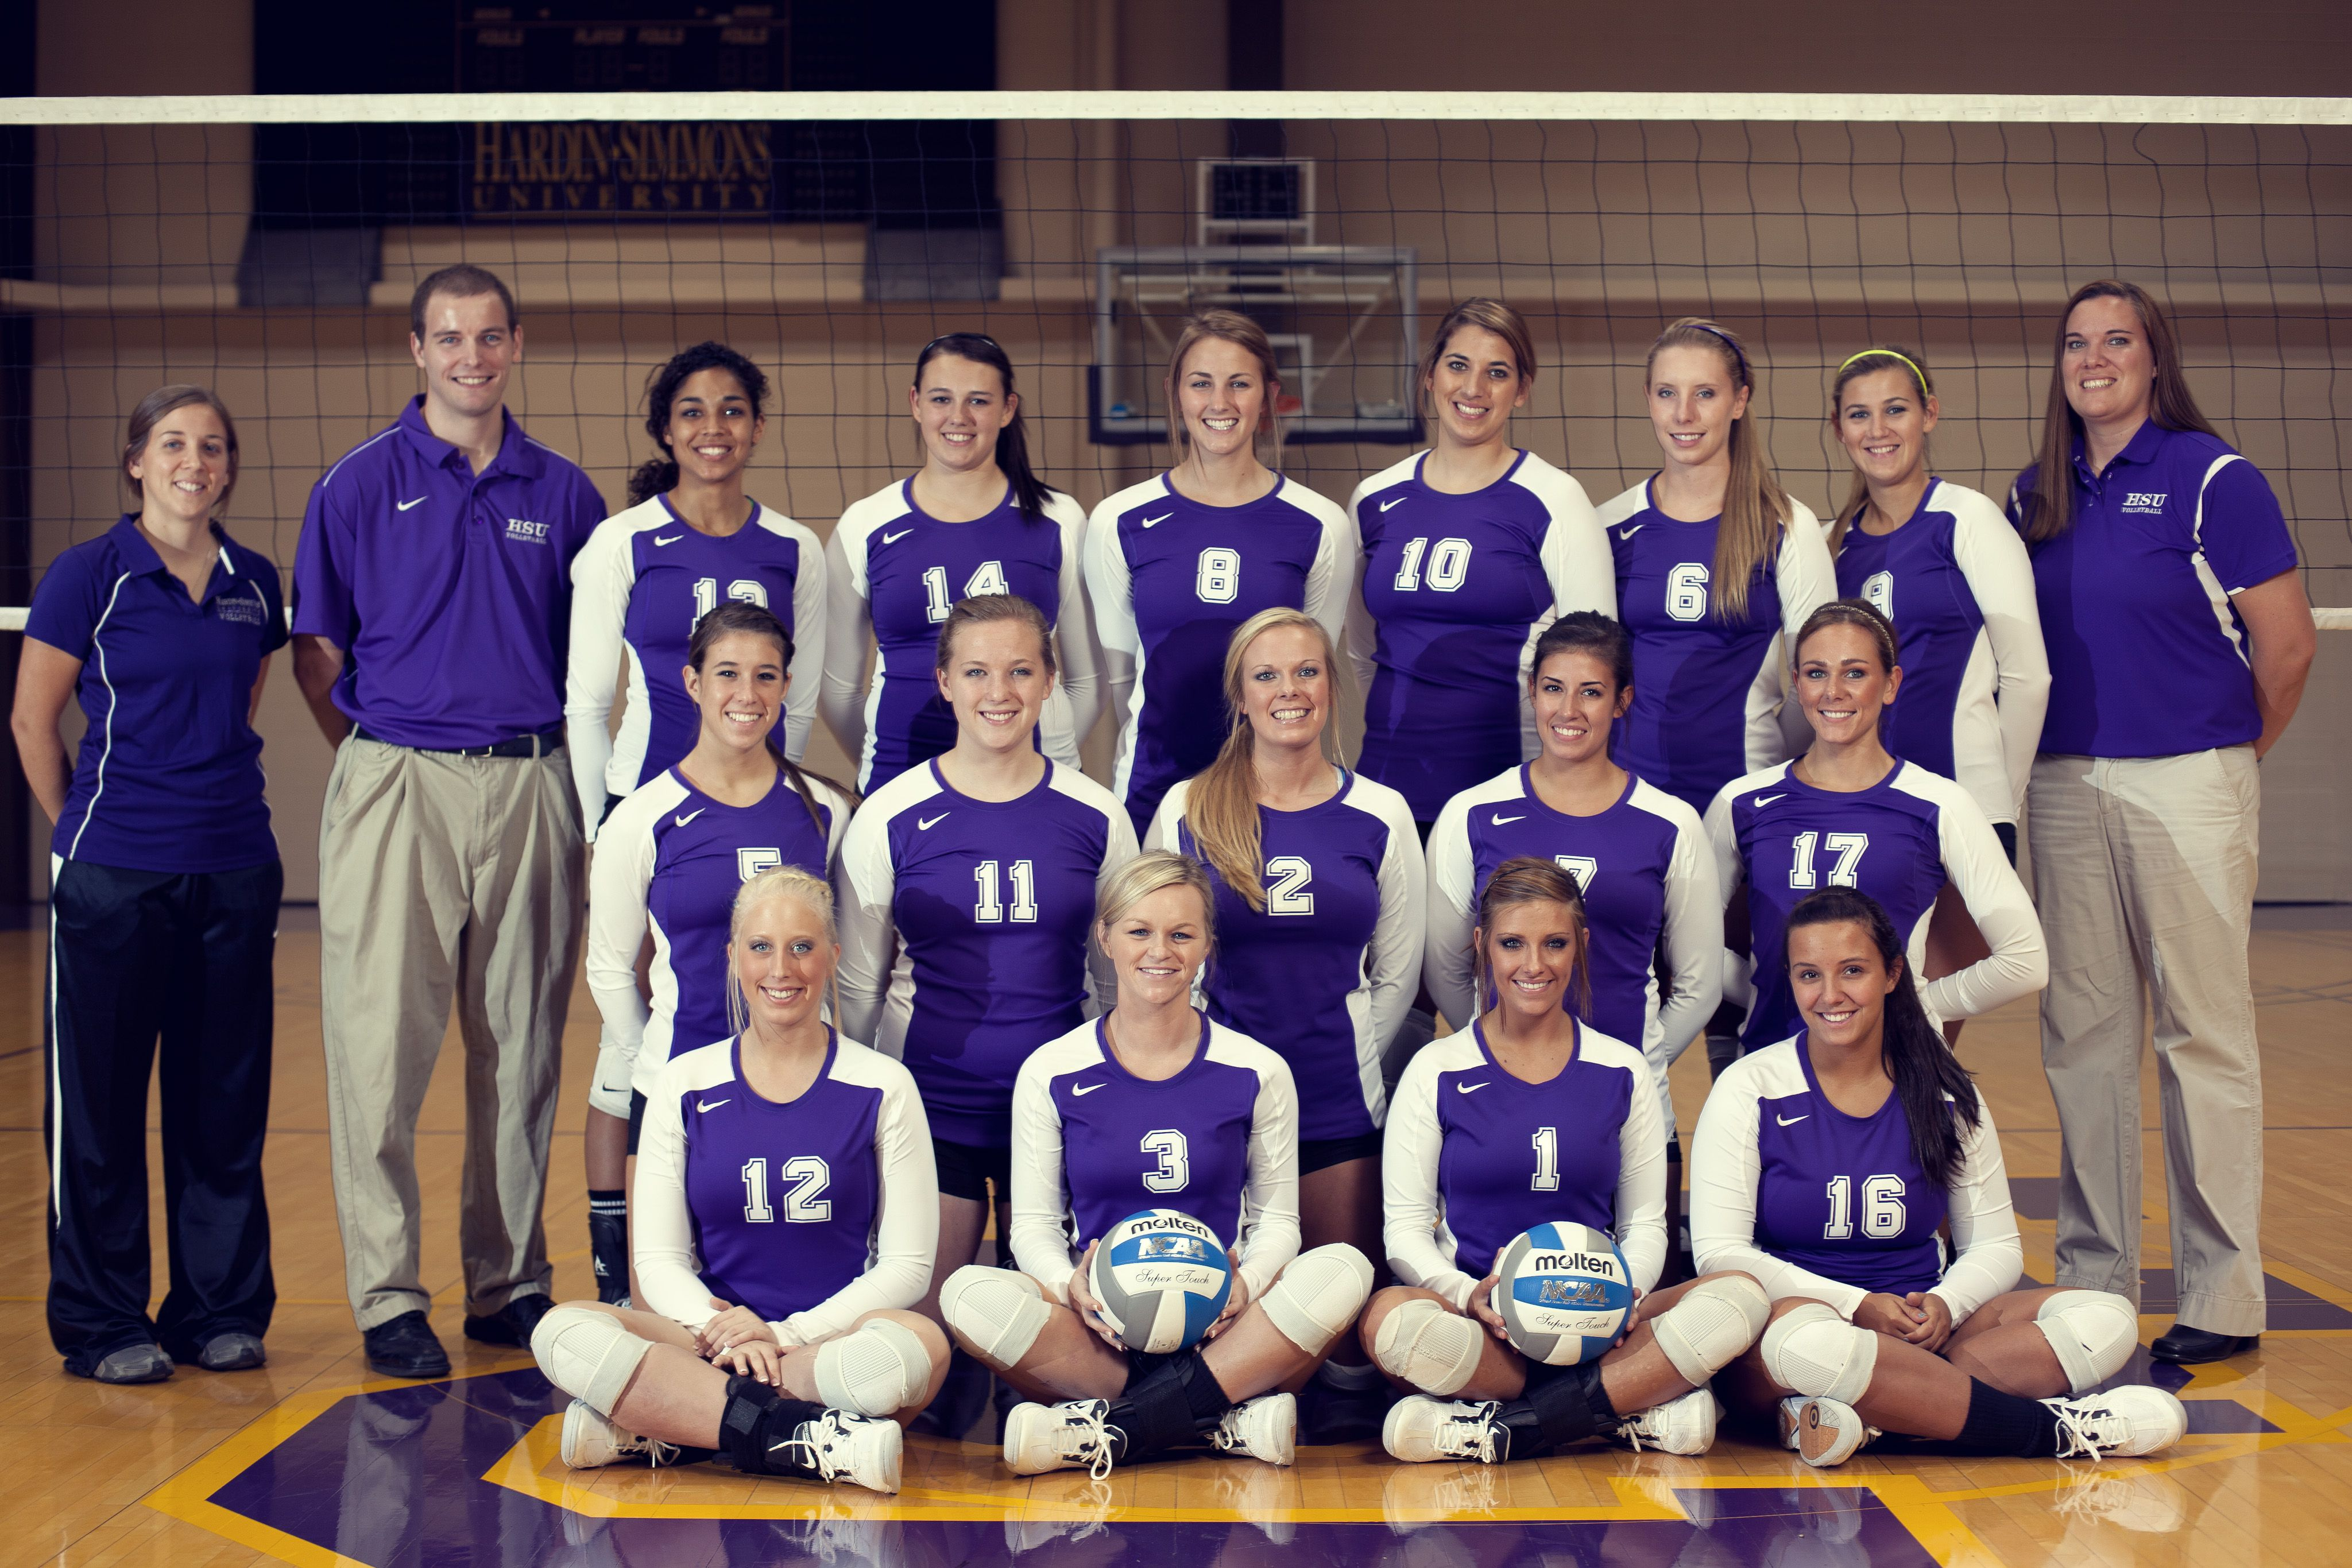 Hsu Volleyball Team Volleyball Team Volleyball Teams